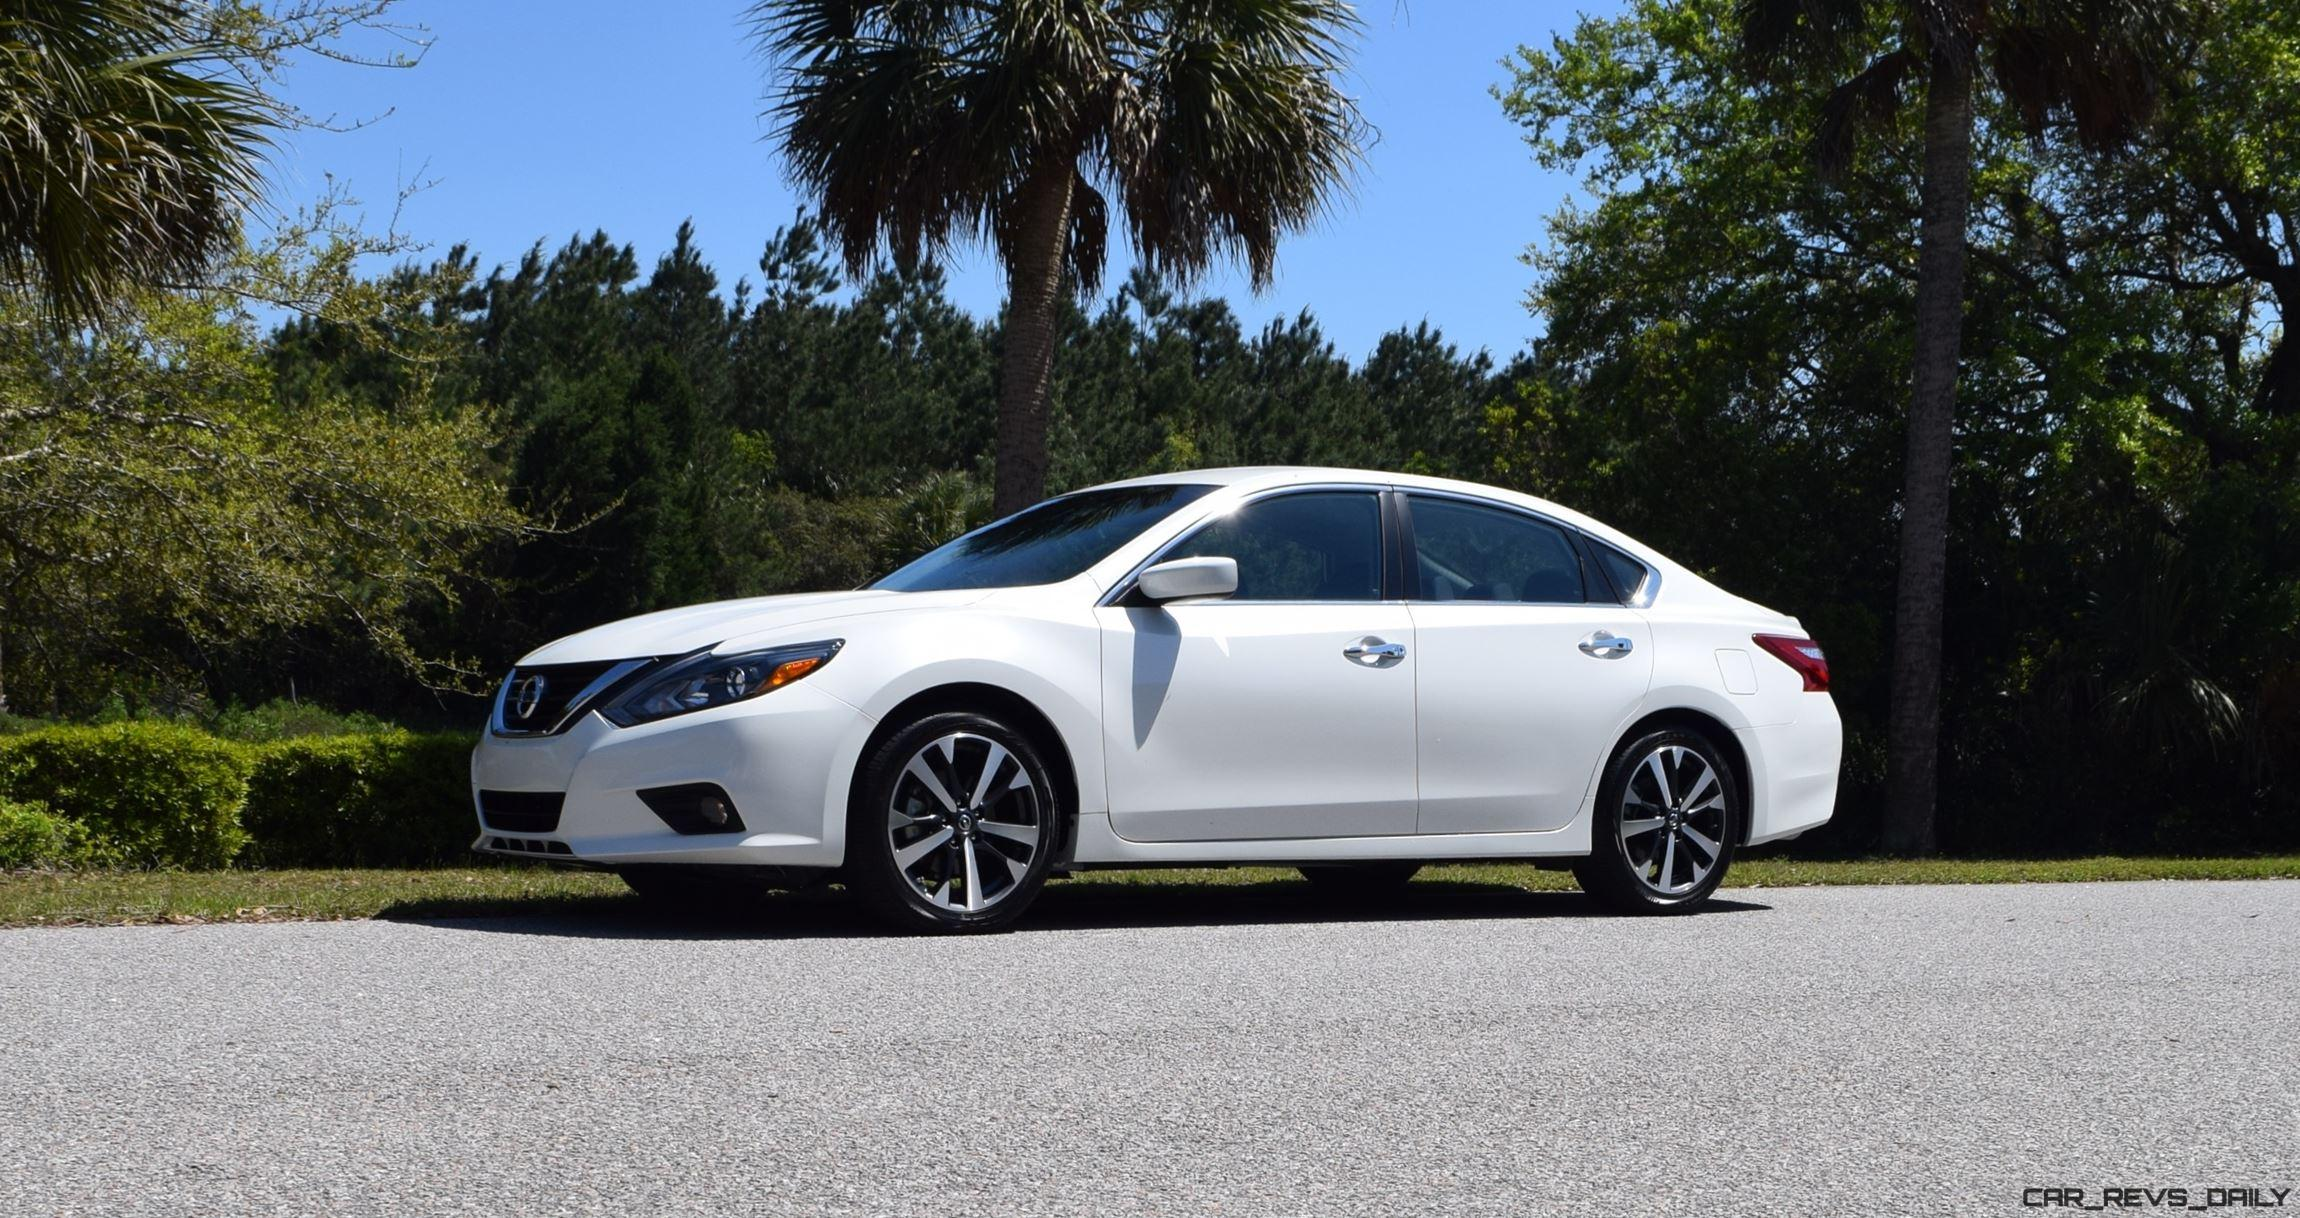 2018 Nissan Altima 25 Sr Hd Road Test Review Drive Video